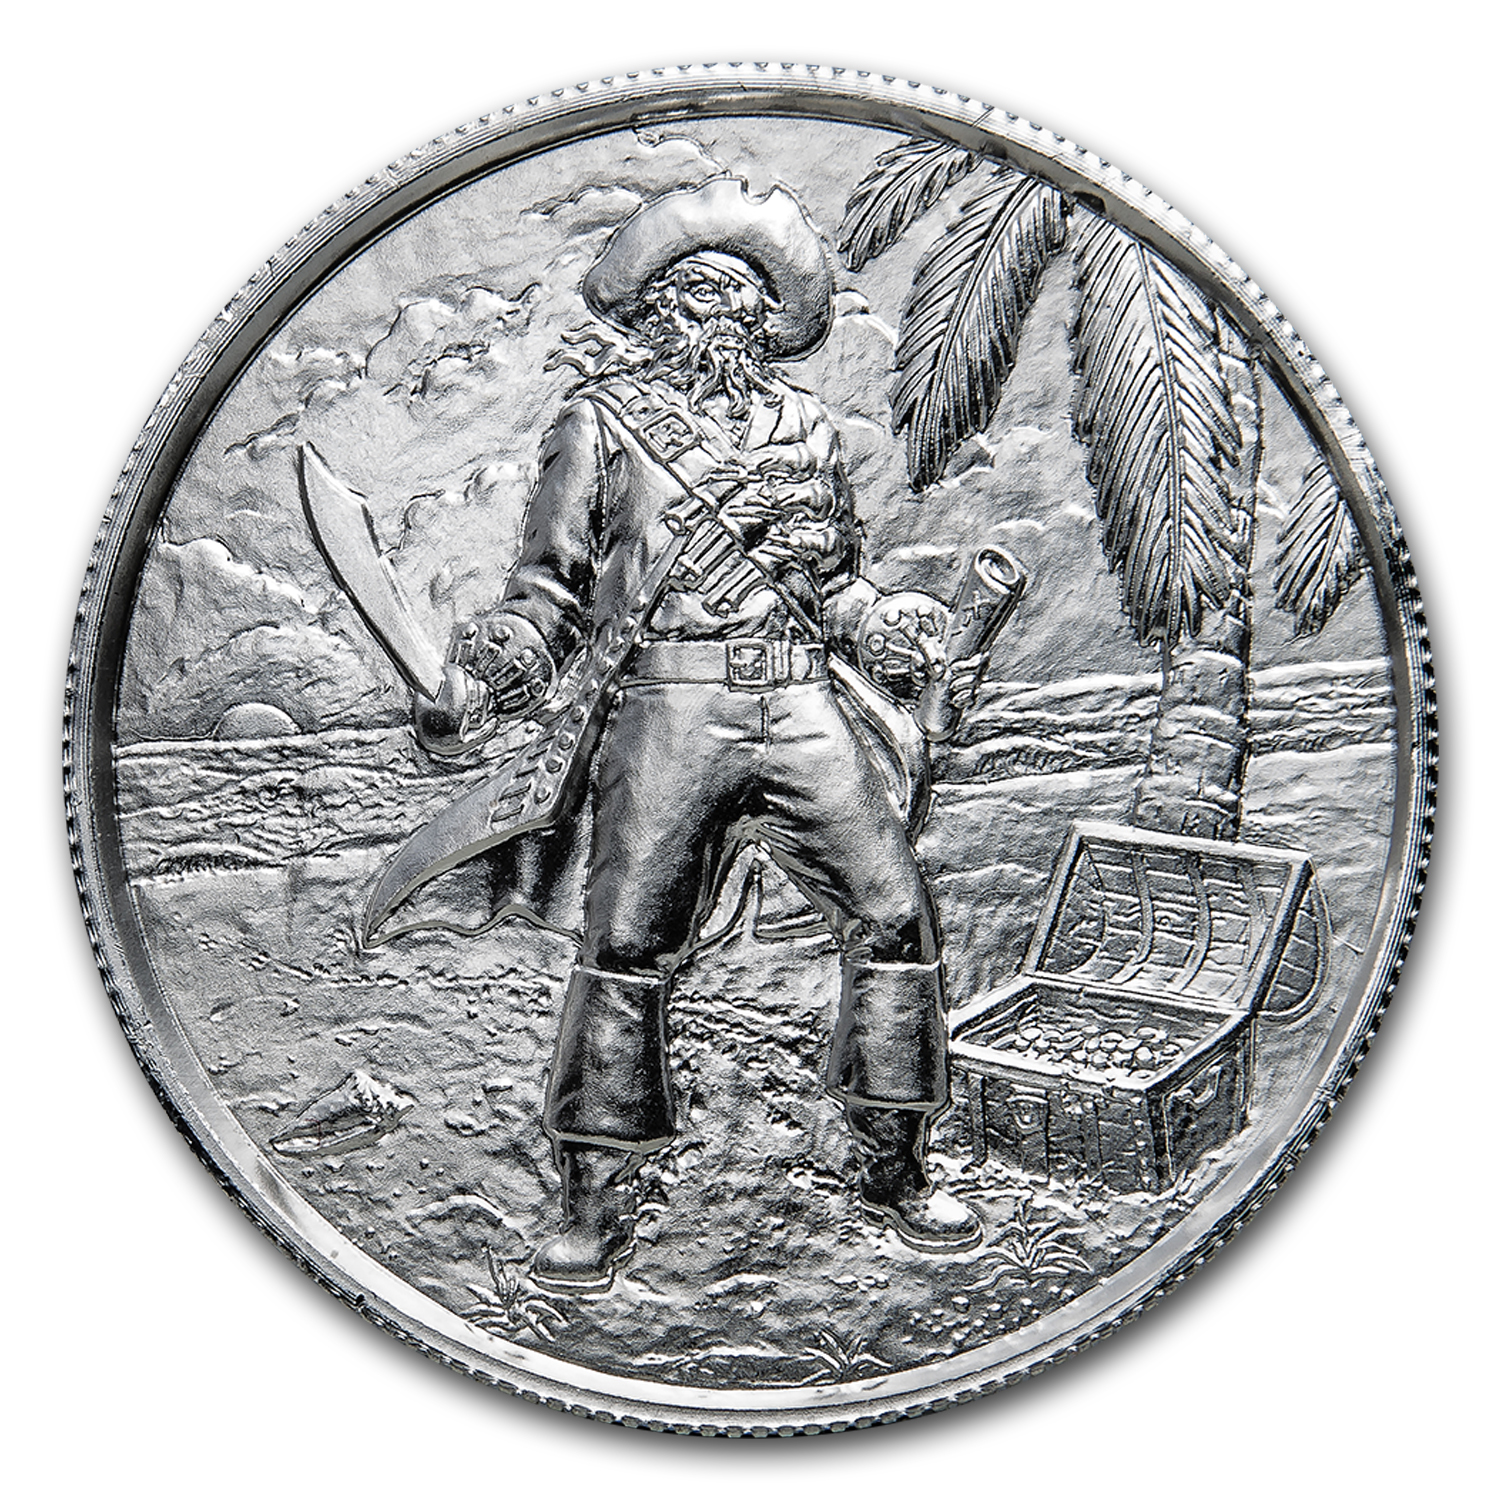 2 oz Silver Round - The Captain (Ultra High Relief)